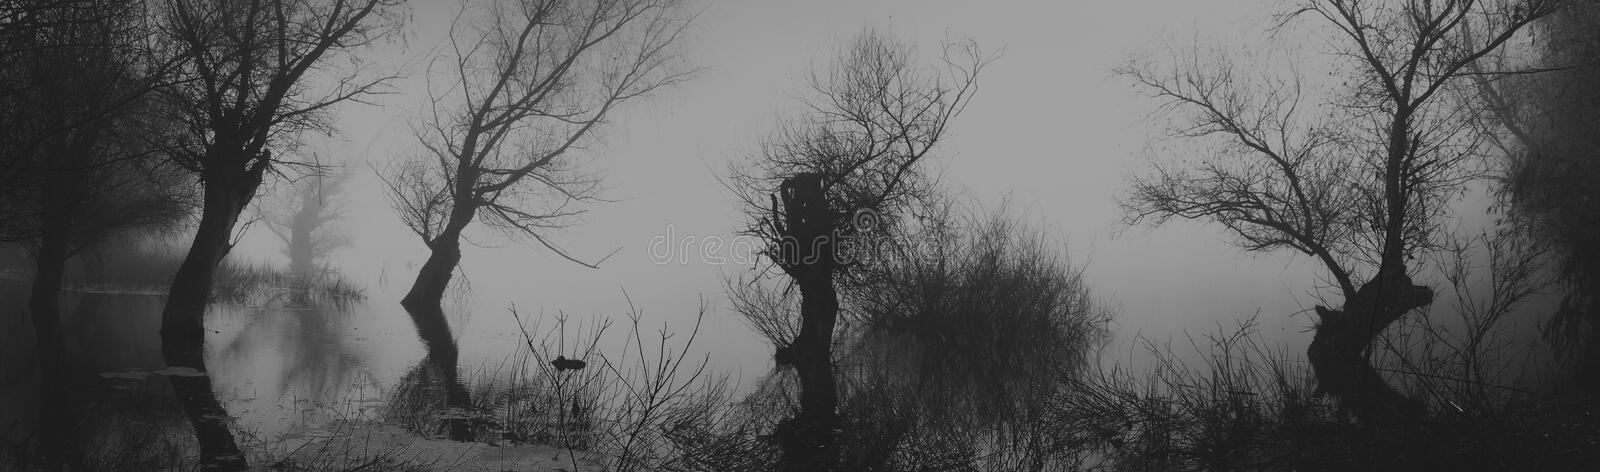 Spooky dark landscape showing silhouettes od trees in the swamp. On misty night stock photos